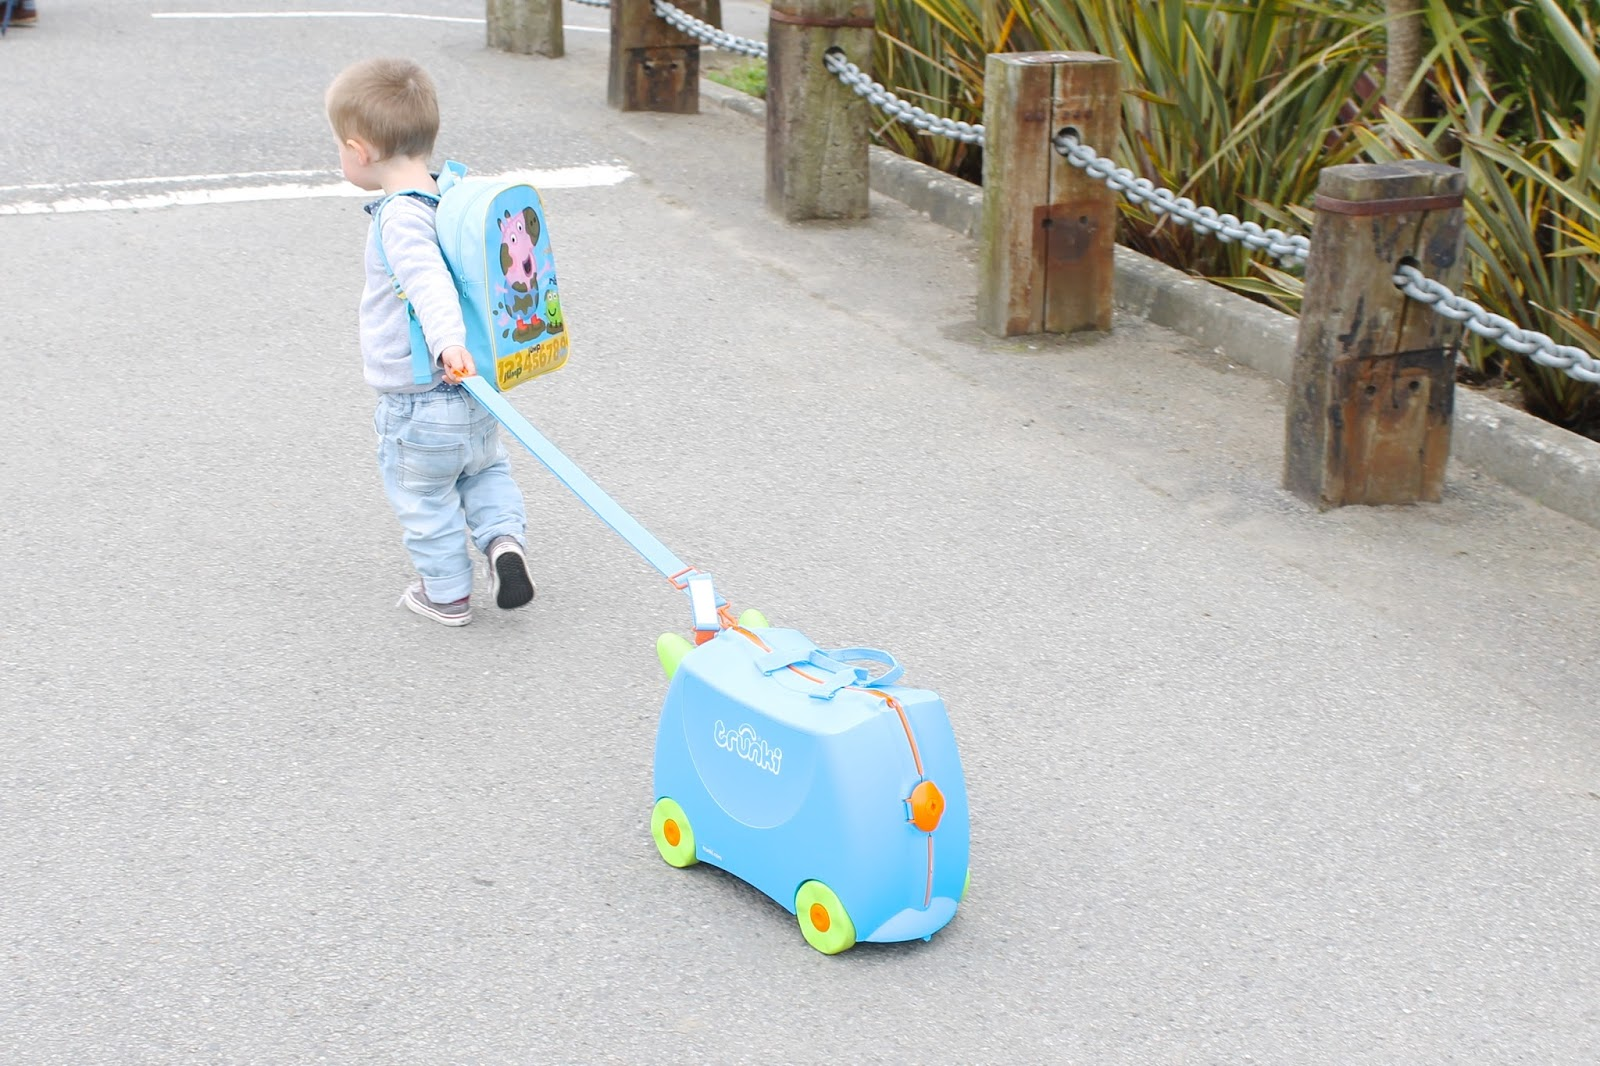 Trunki Terrance, Trunki Review and Gveaway